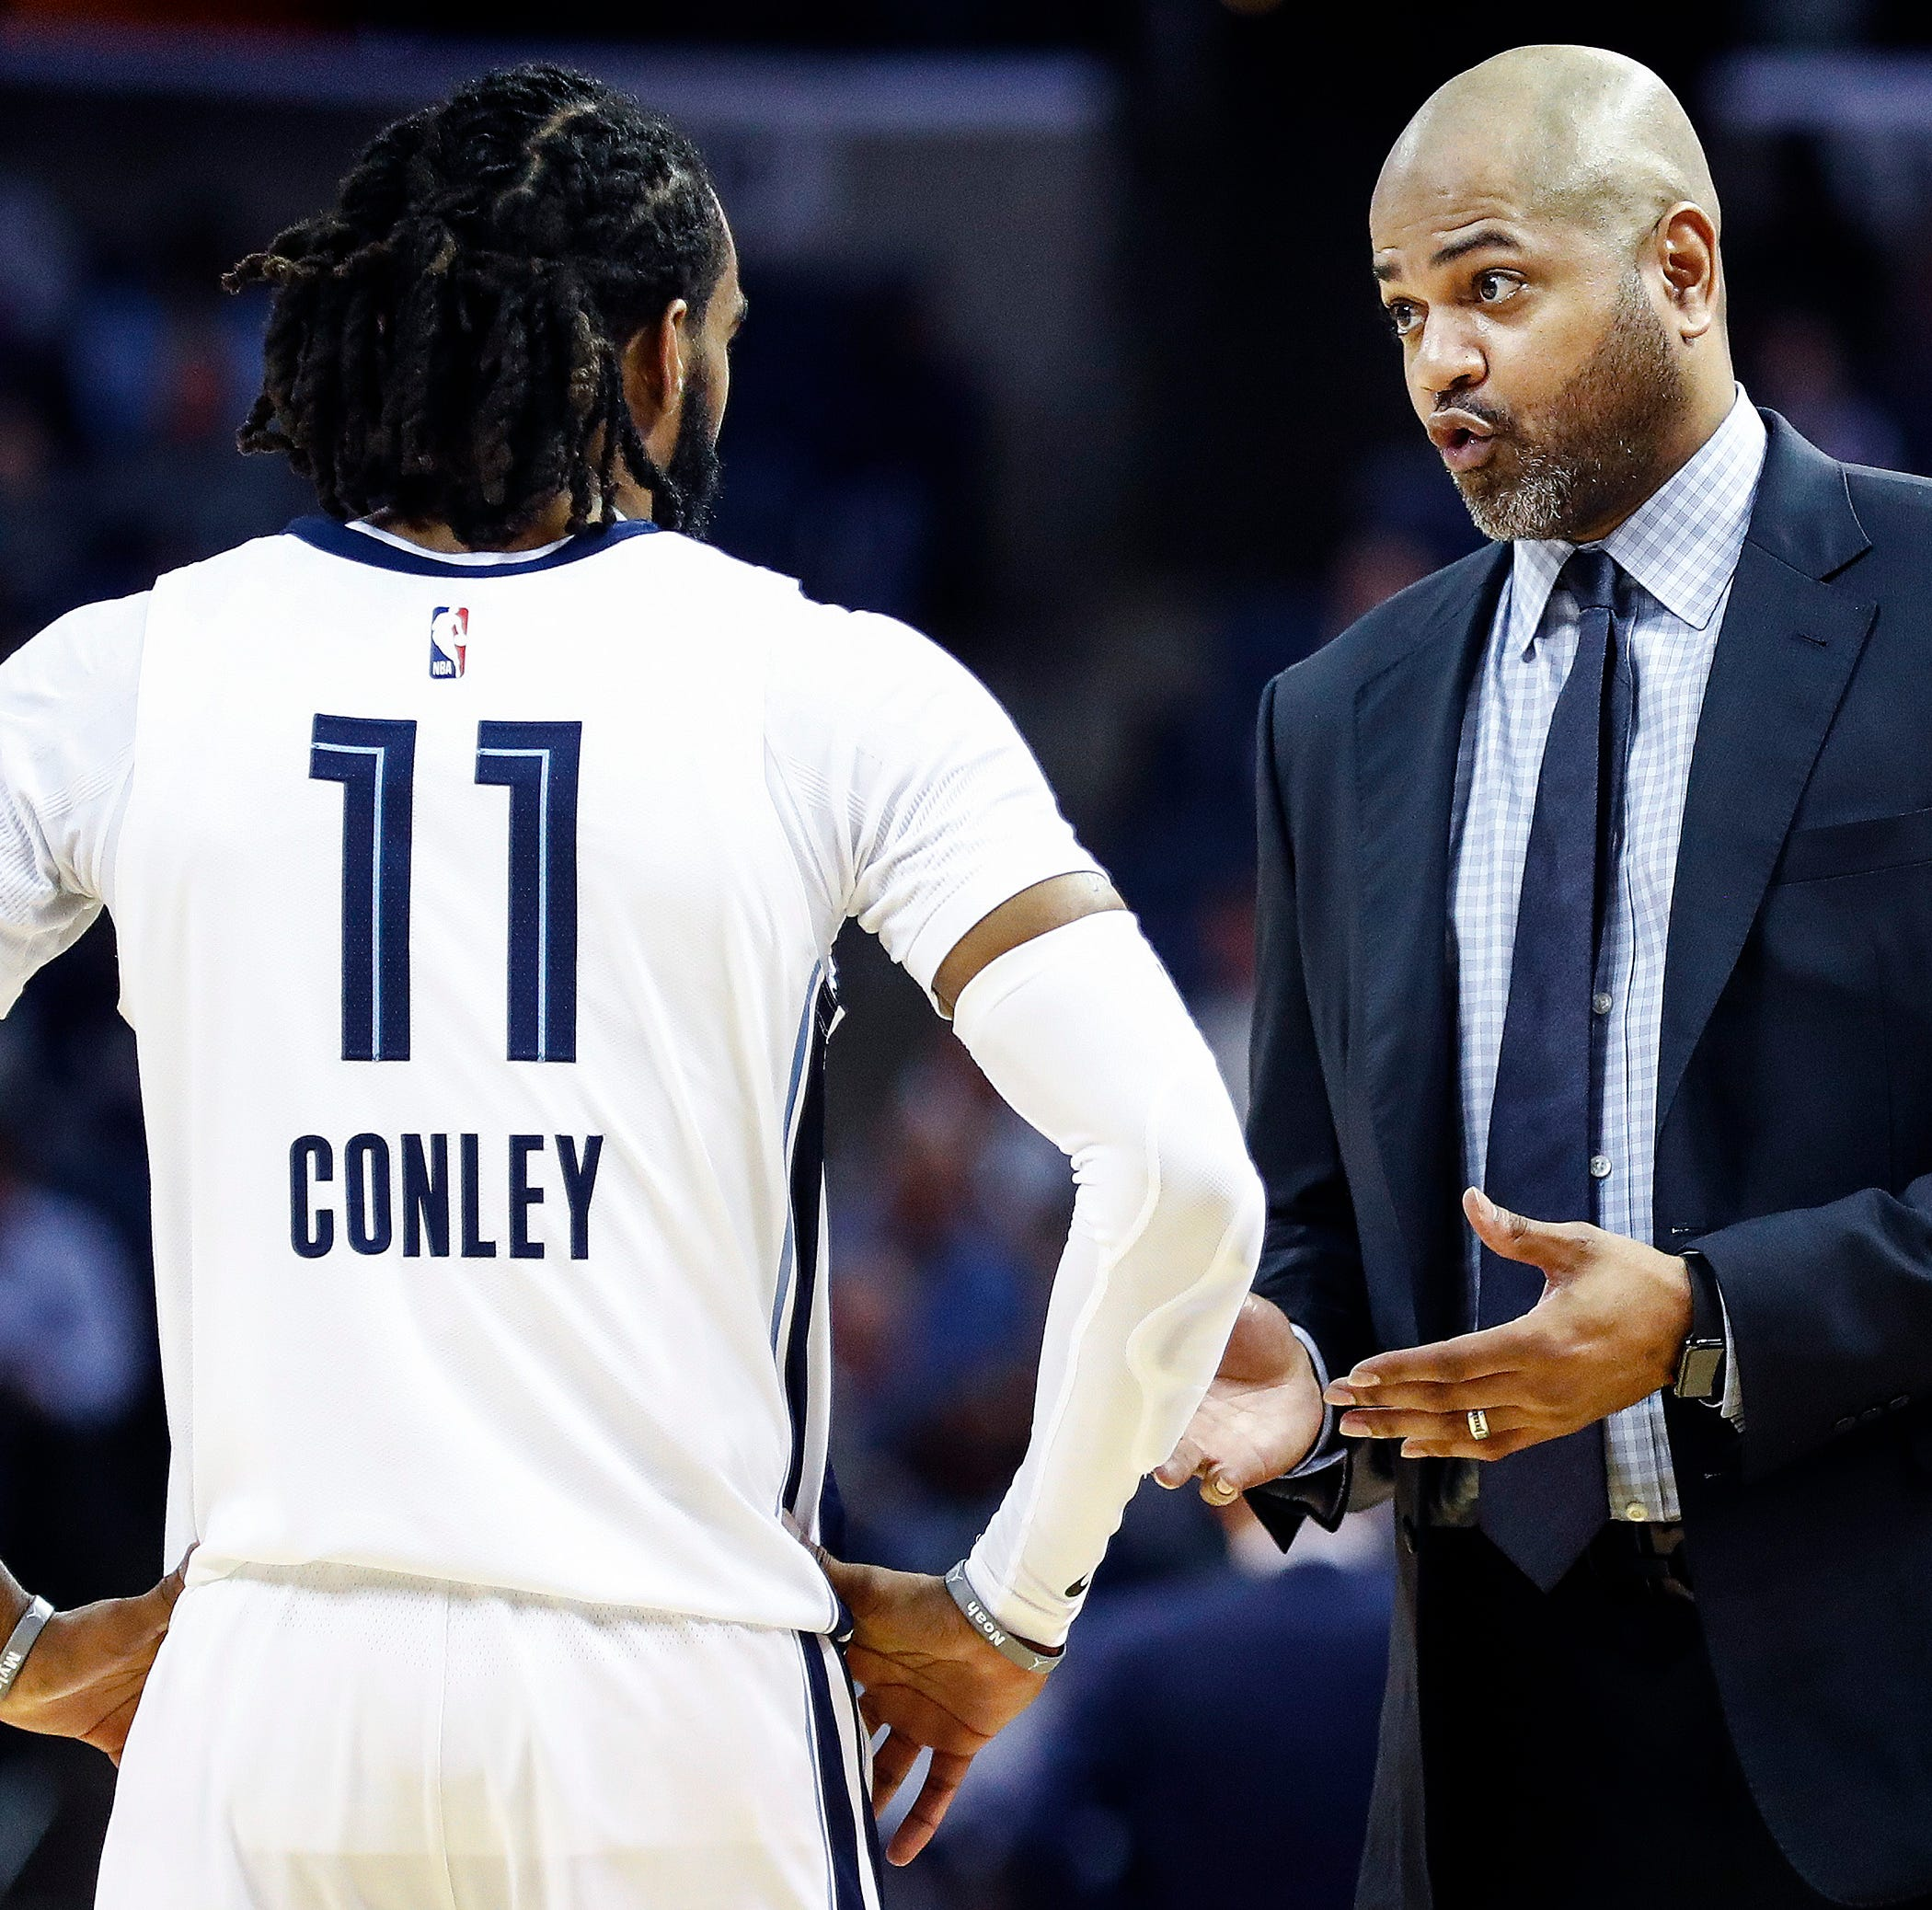 Memphis Grizzlies players praised fired coach J.B. Bickerstaff